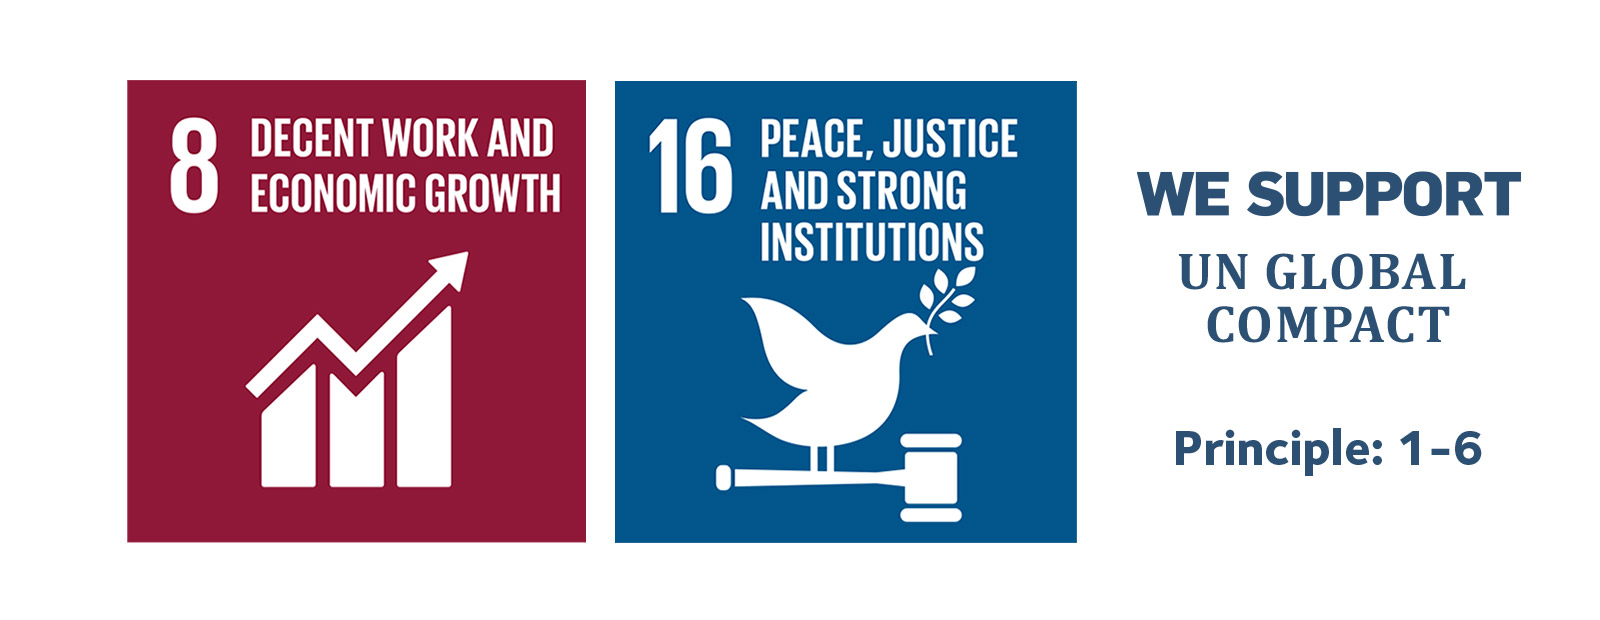 8. Decent work and economic growth. 16. Peace, justice and strong institutions.